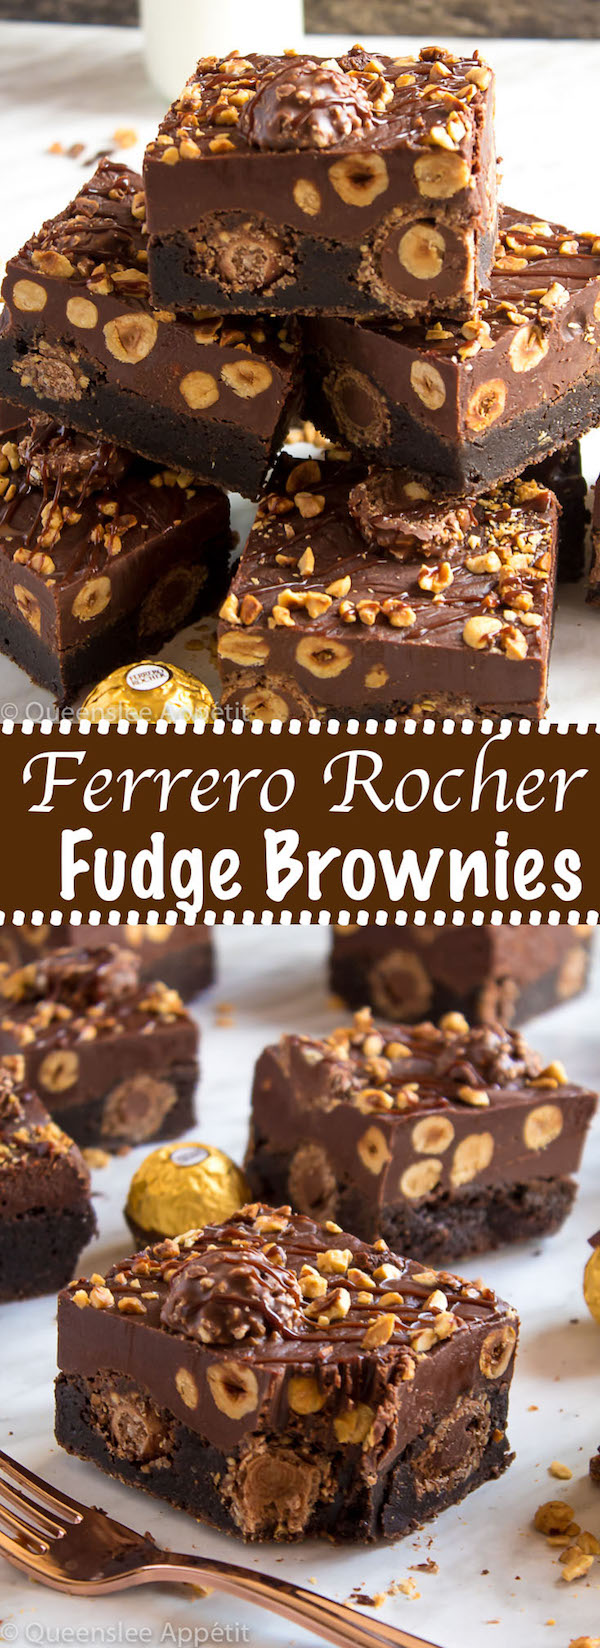 These Ferrero Rocher Fudge Brownies are the ultimate dessert bars! A Ferrero Rocher stuffed fudge brownie, topped with a creamy Nutella Fudge filled and topped with Ferrero Rochers and roasted hazelnuts. Take these bars to another level with a drizzle of silky Nutella Ganache and you've got the greatest brownie ever!